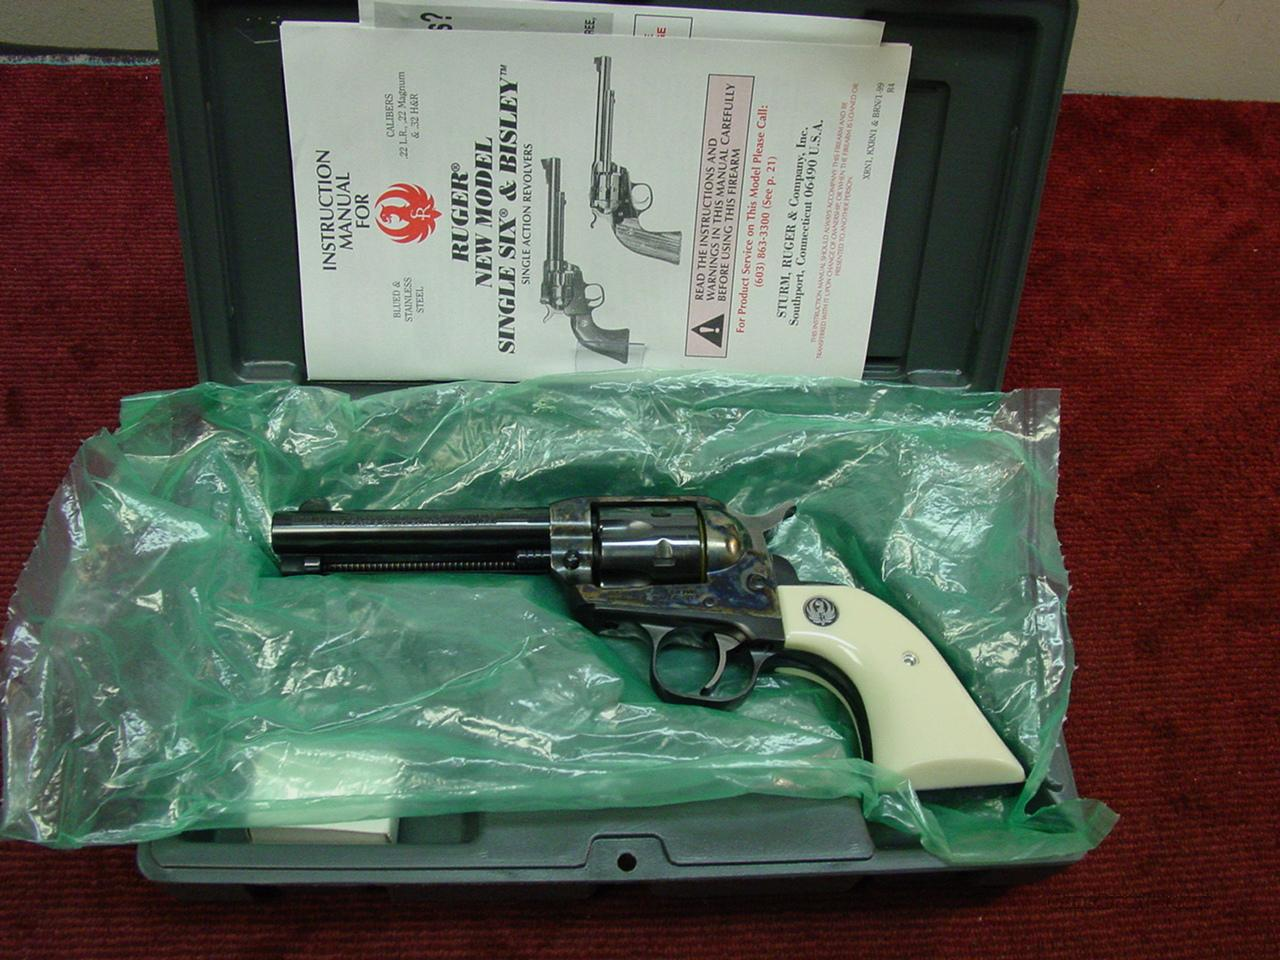 "RUGER SINGLE SIX 32 H&R MAG - 4 1/2"" CASE COLORED - NIB  Guns > Pistols > Ruger Single Action Revolvers > Single Six Type"